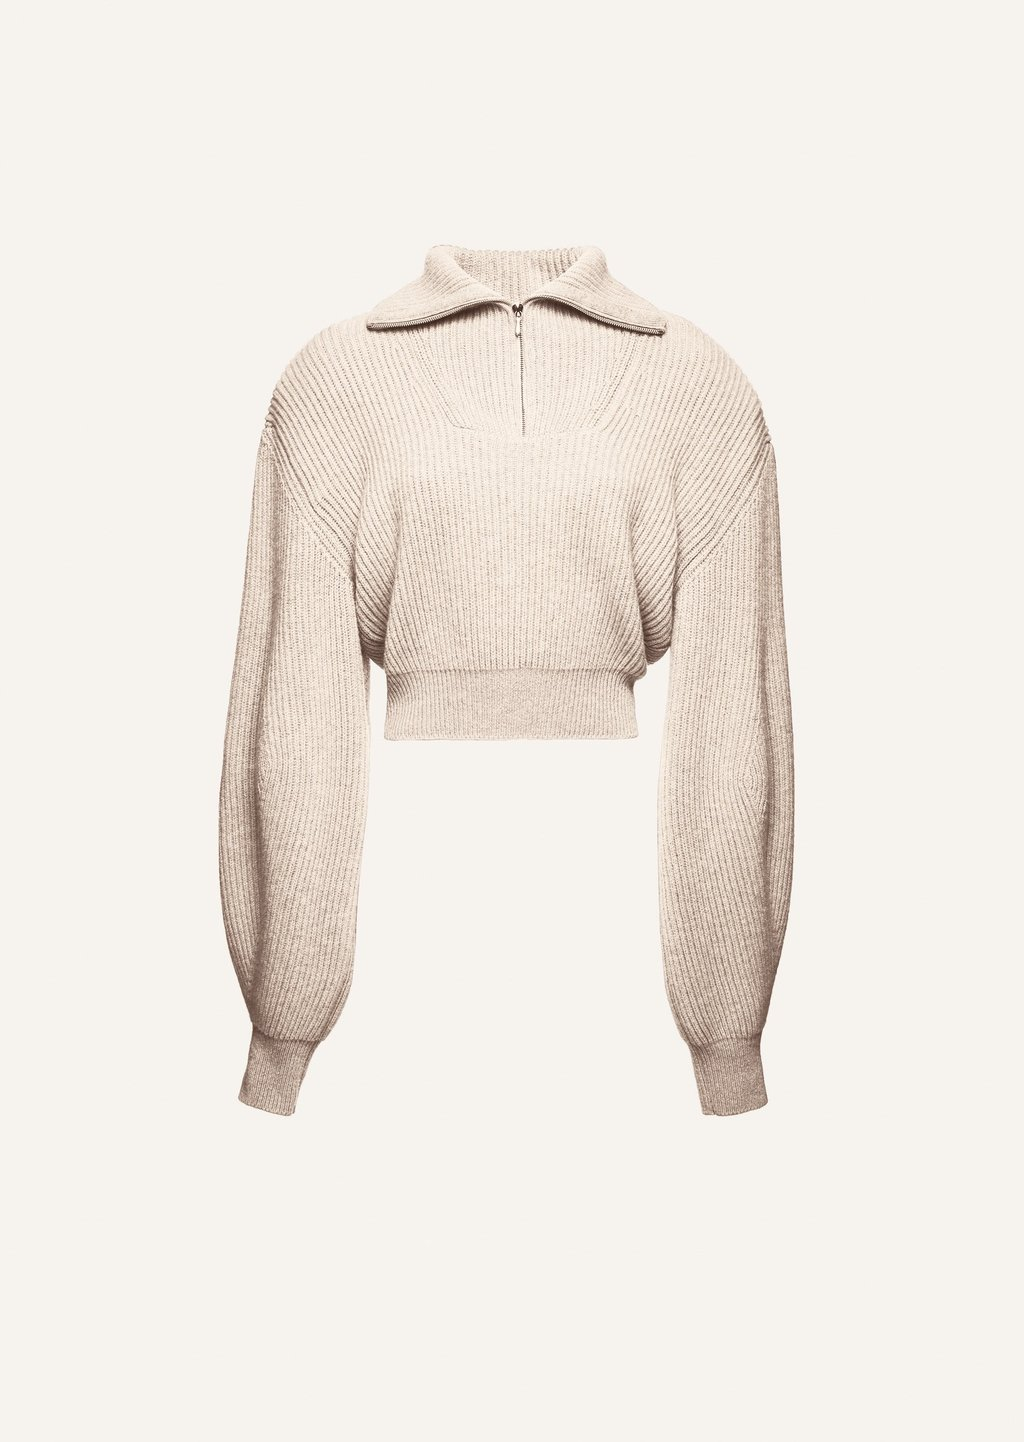 Ribbed cashmere pullover sweater in oatmeal by Magda Butrym, available on magdabutrym.com for EUR1295 Hailey Baldwin Top Exact Product